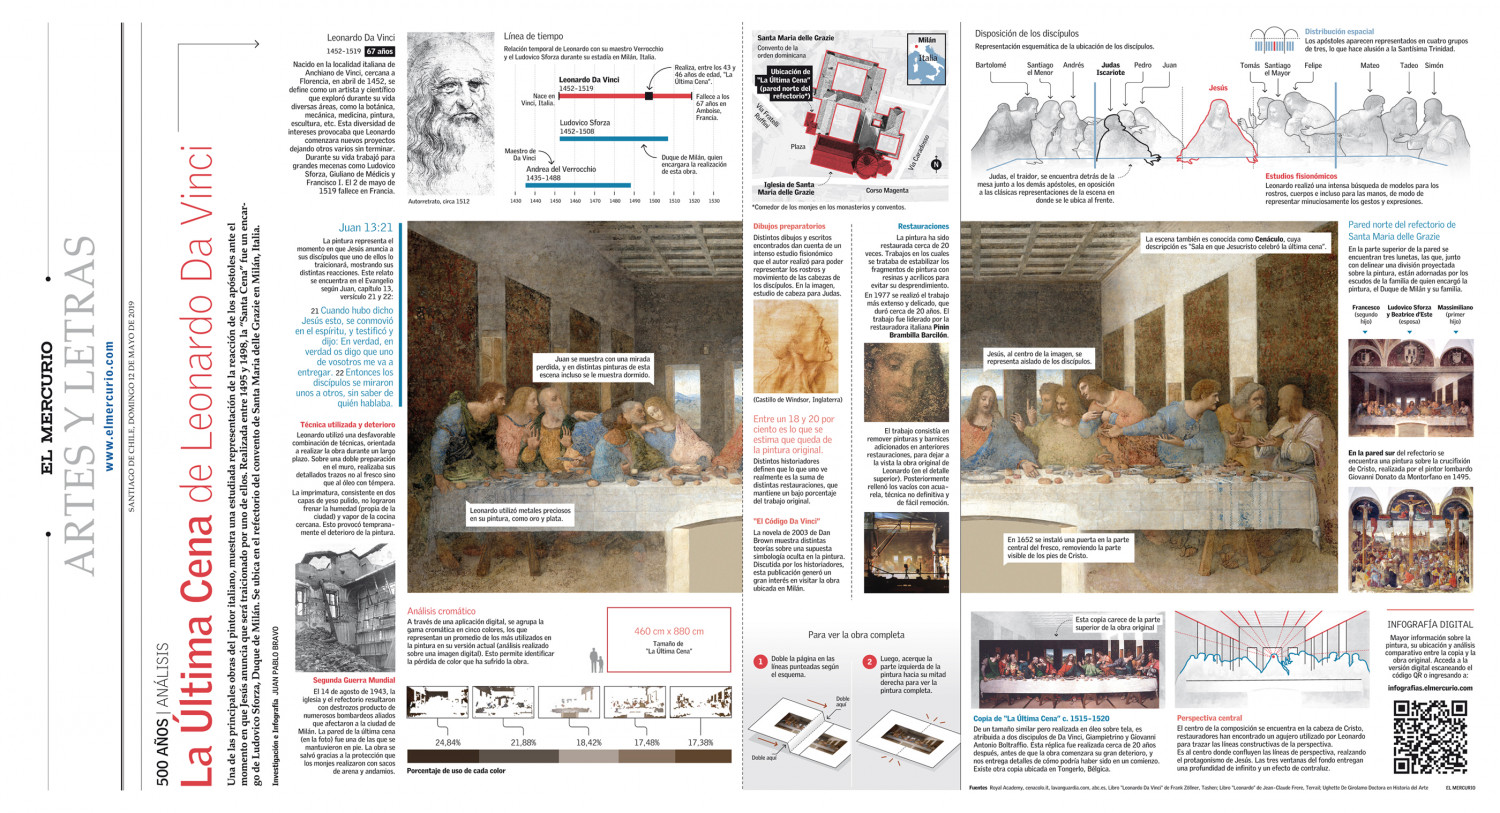 """Infographic / Analysis of the painting """"The Last Supper"""" by Leonardo Da Vinci, printed version Infographic"""